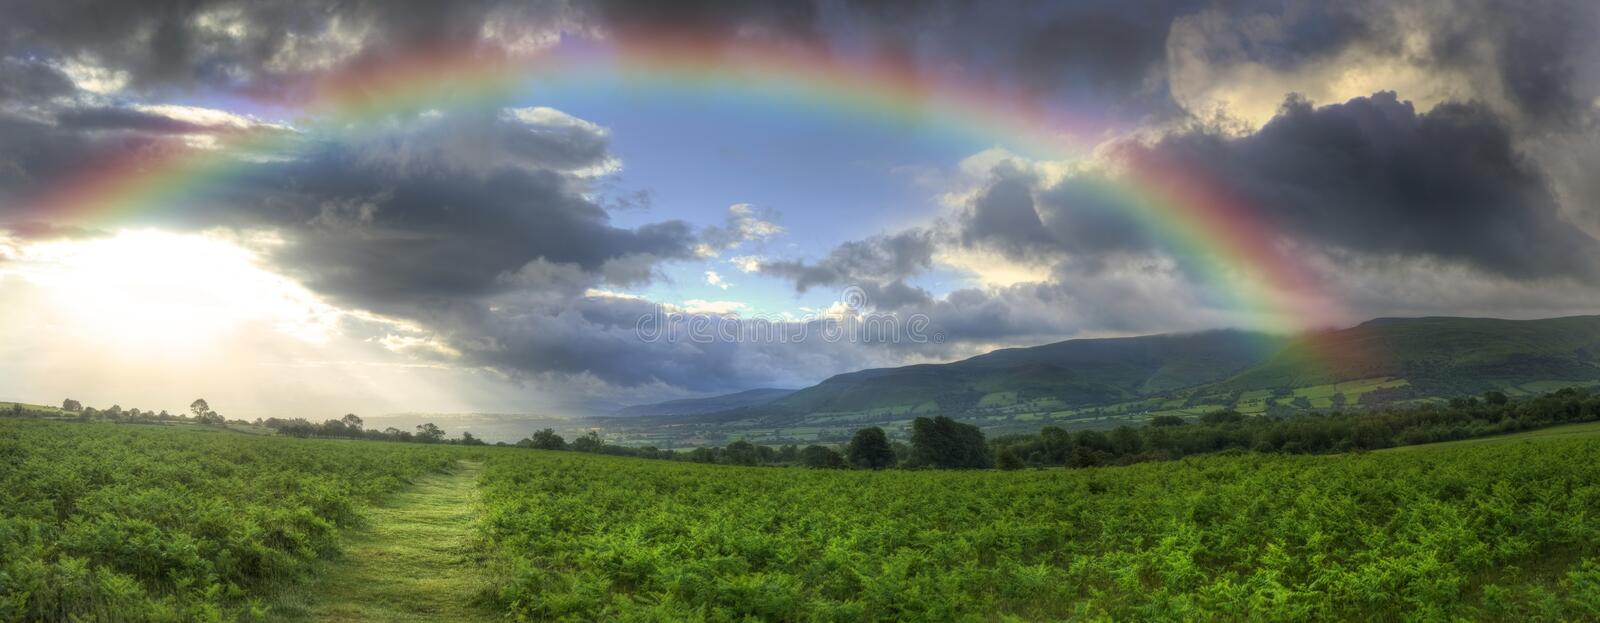 Stunning Summer sunset across countryside landscape with dramatic rainbow royalty free stock image